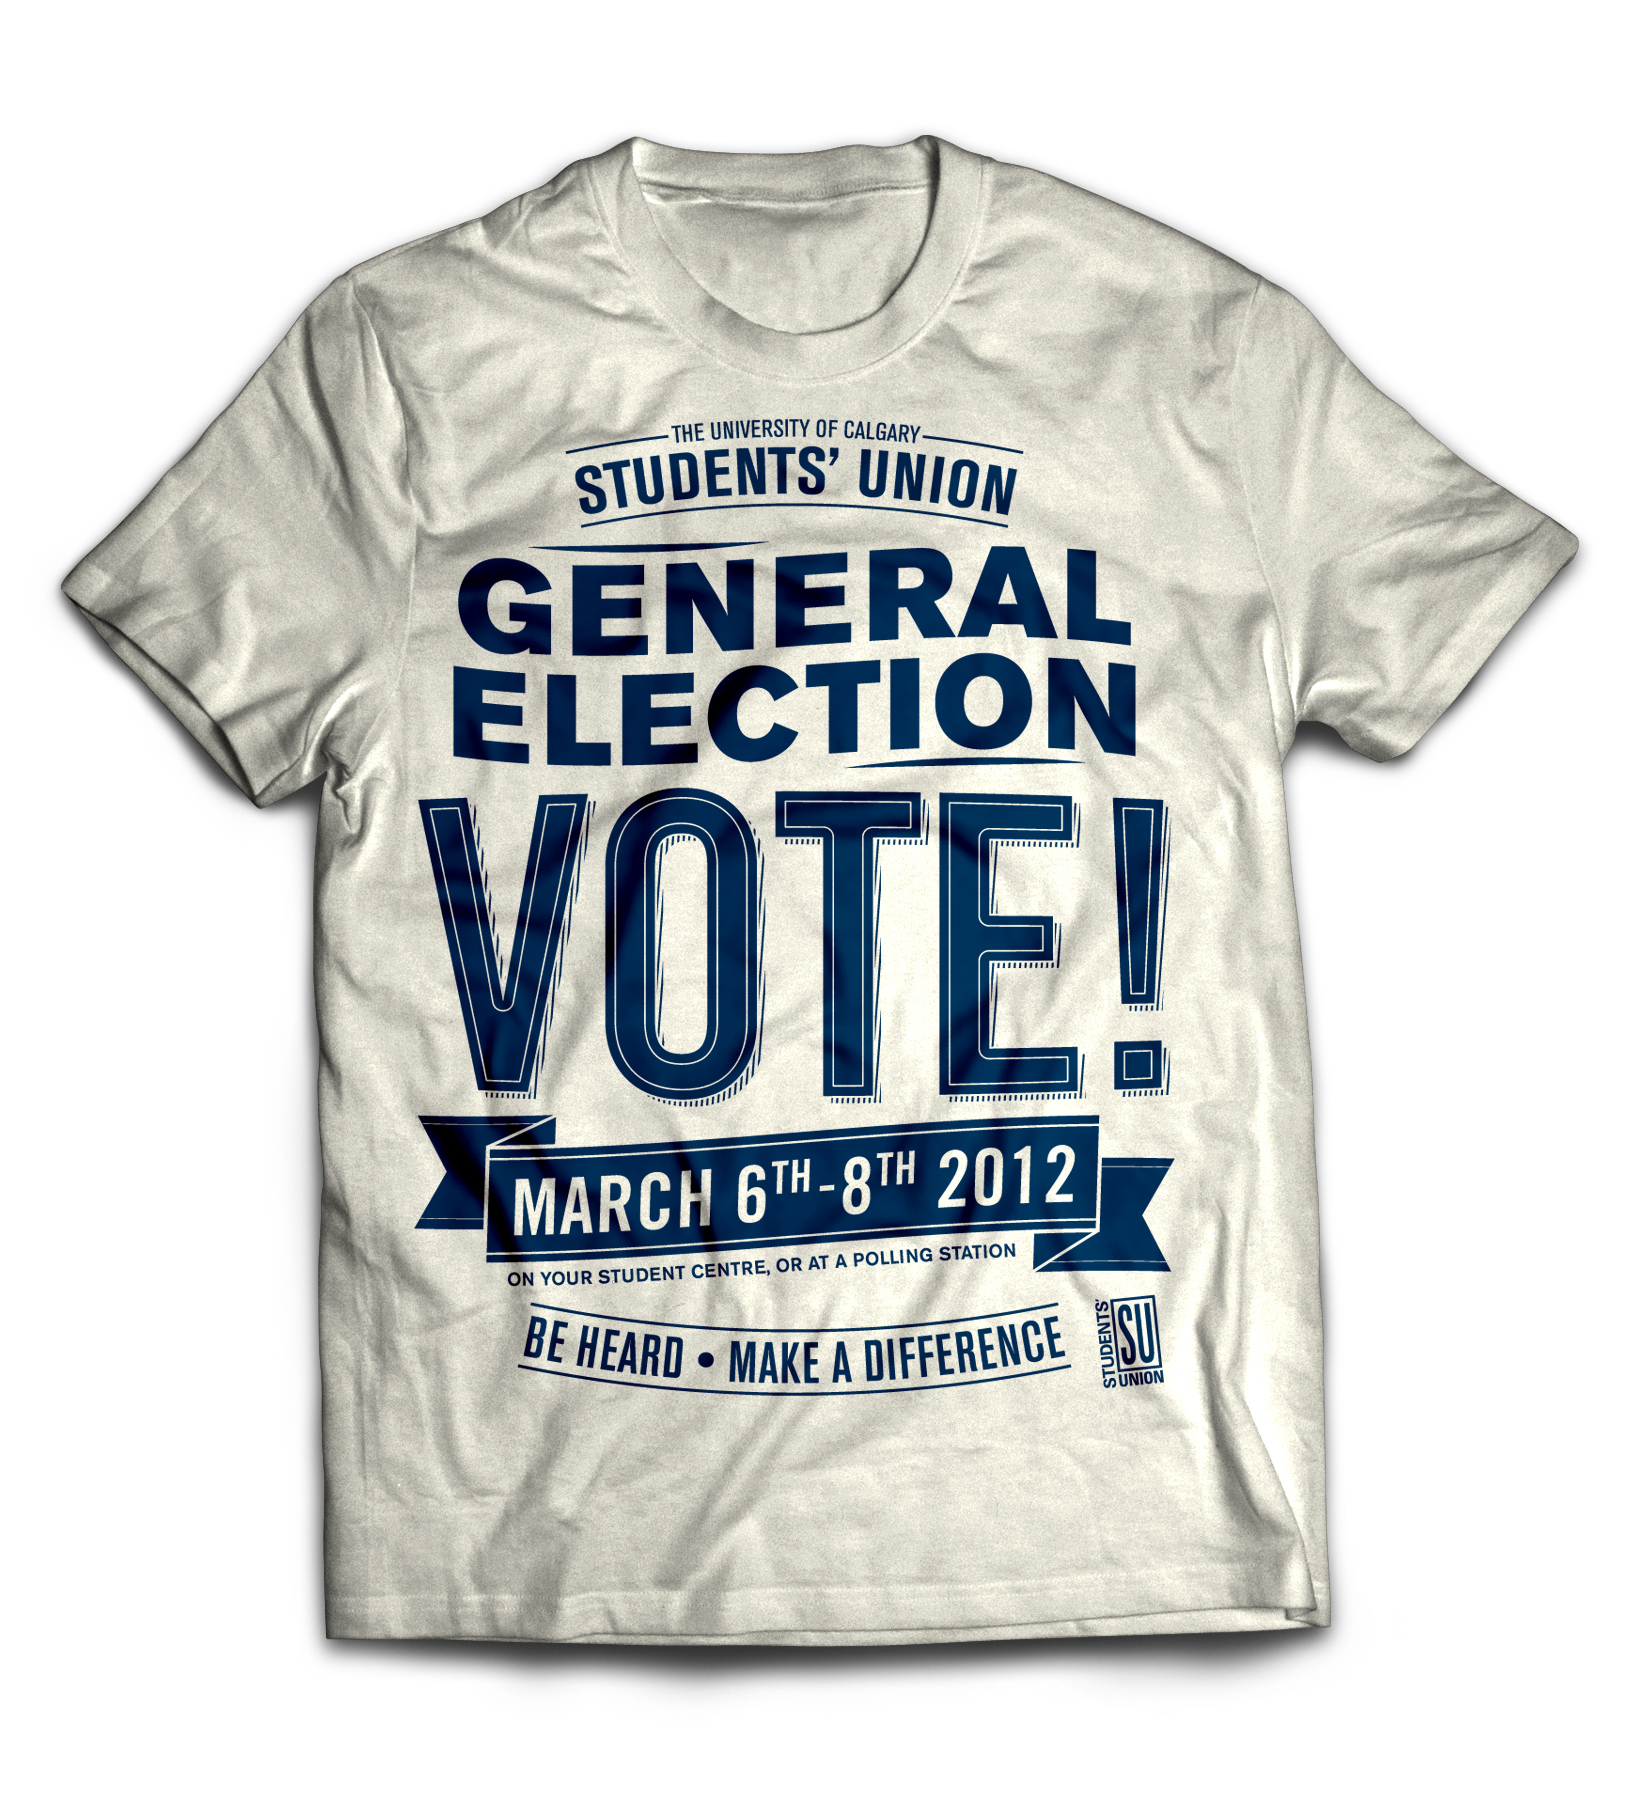 U of C SU General Election 2012.jpg